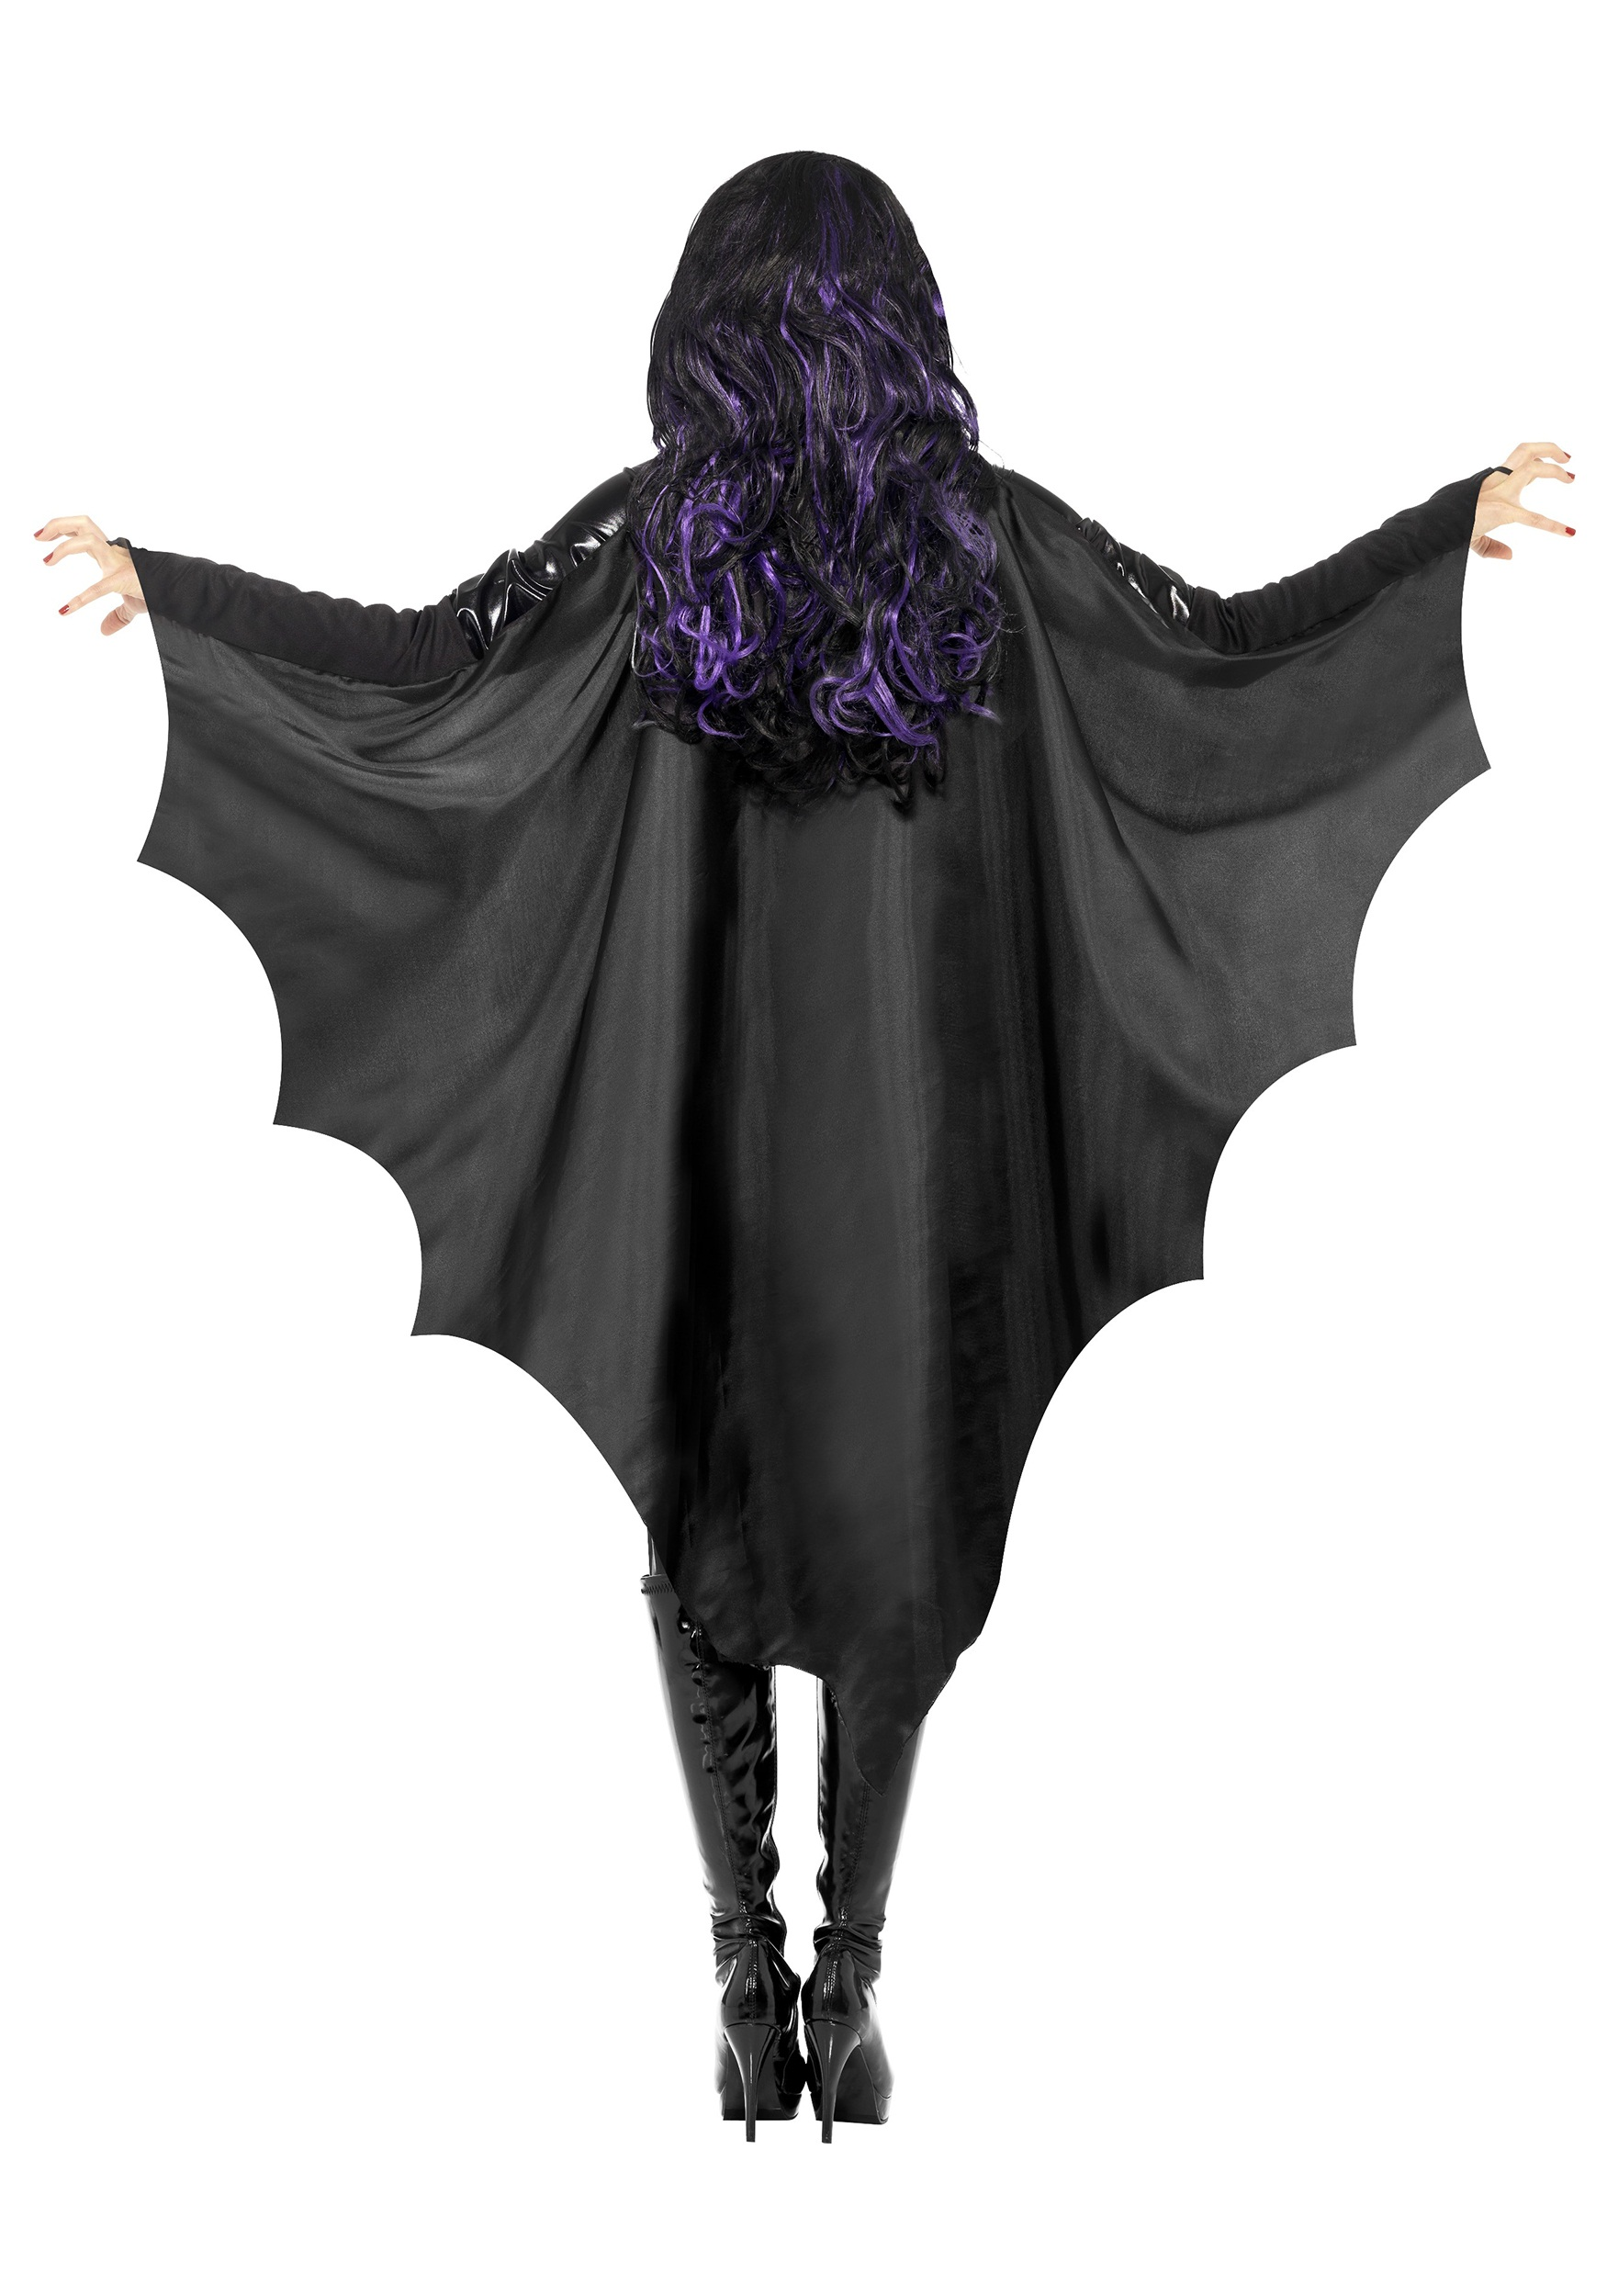 Bat wings costume accessories - photo#25